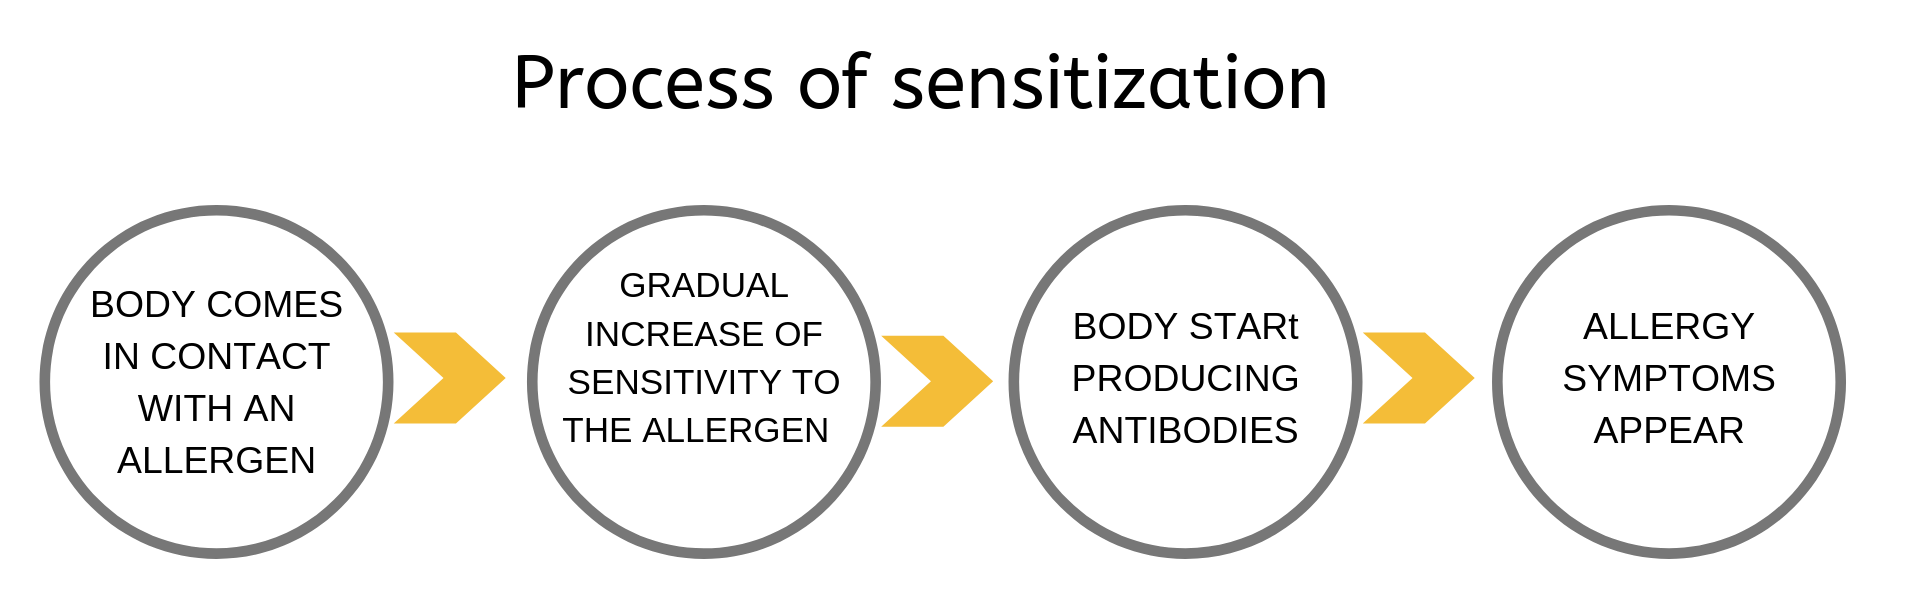 allergies process of sensitization